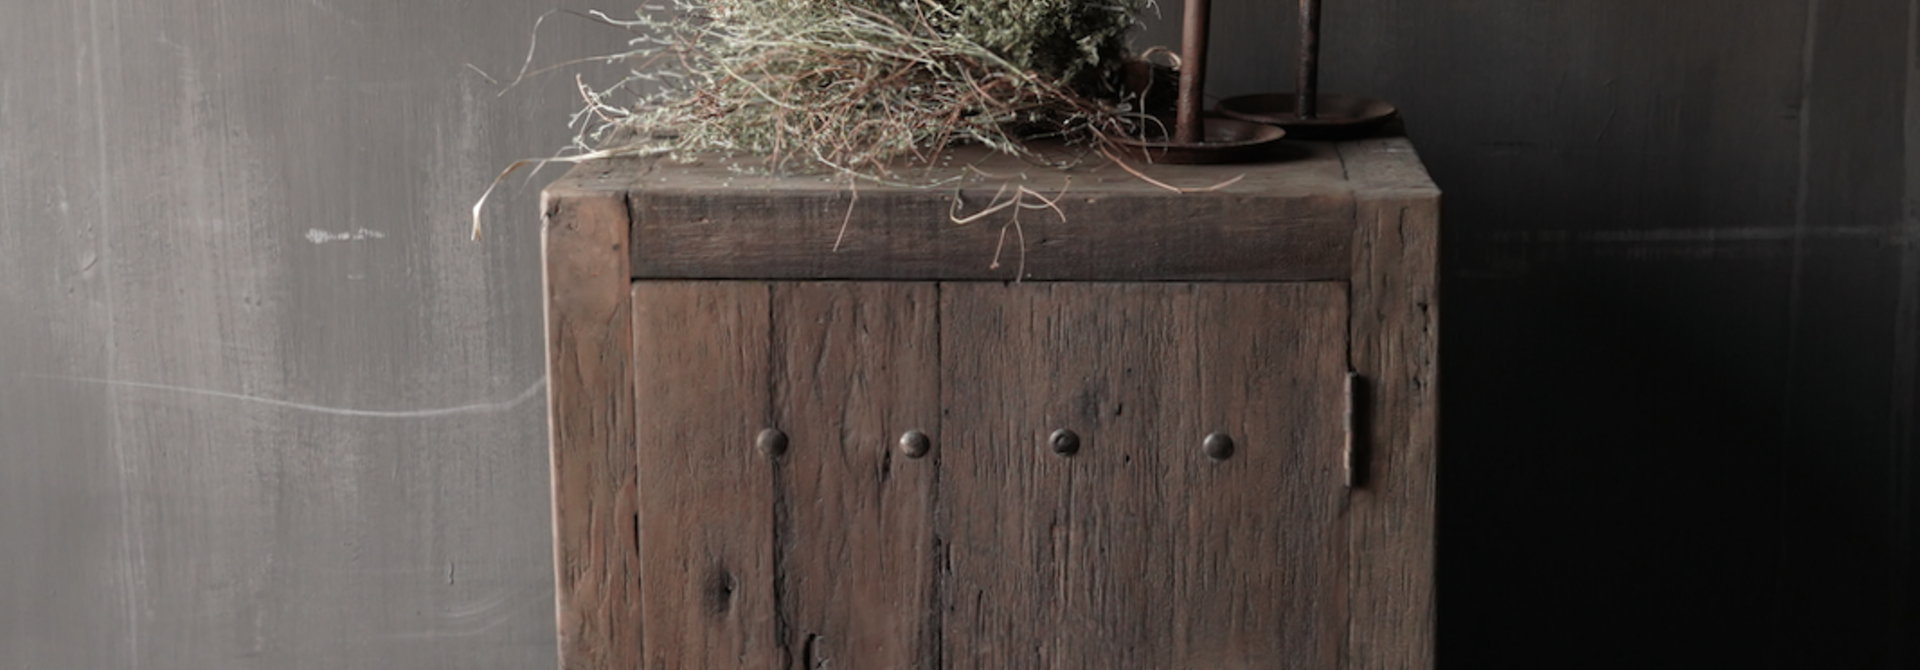 Tough one-door cabinet made of robust wood